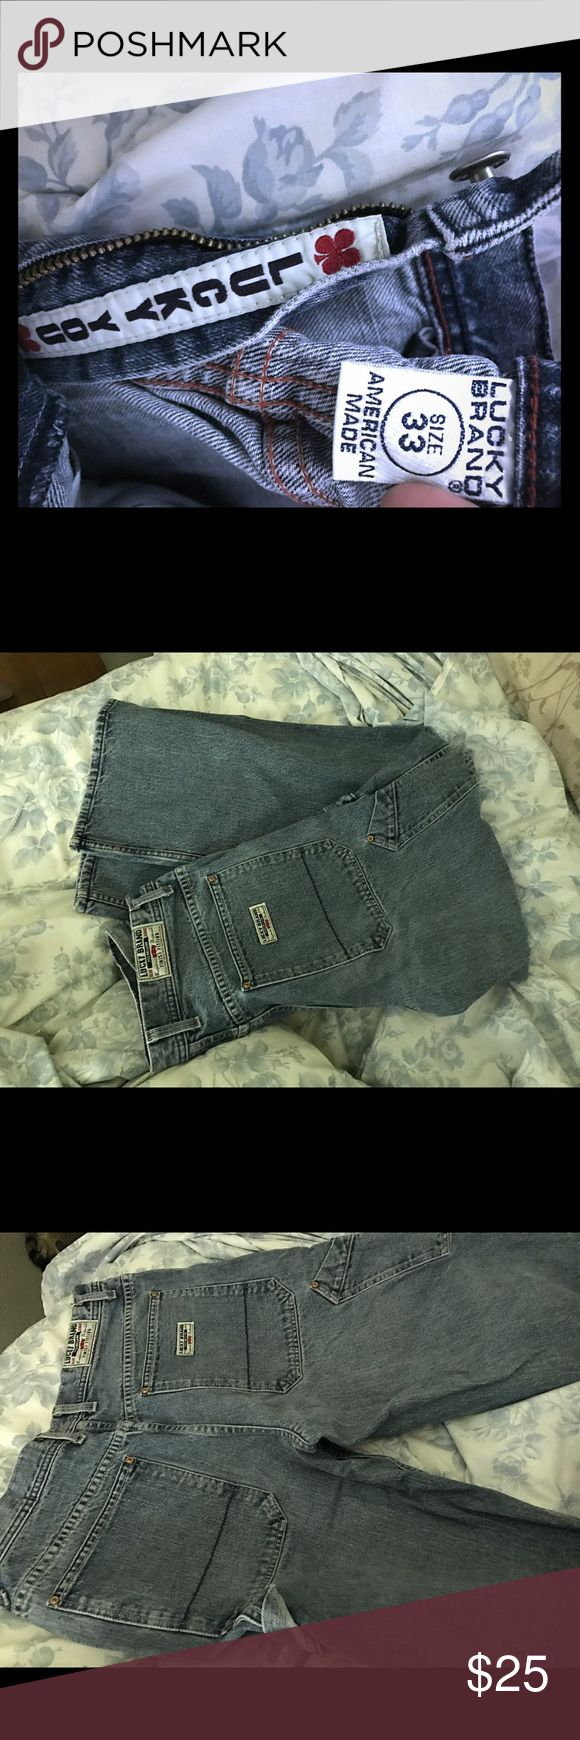 """Men's 33 Lucky Jeans hard to find """"Daytona"""" cut Lucky you! These Men's 33s are in excellent condition- he says he never wore them as he has so many pairs. Enjoy! Lucky Brand Jeans"""